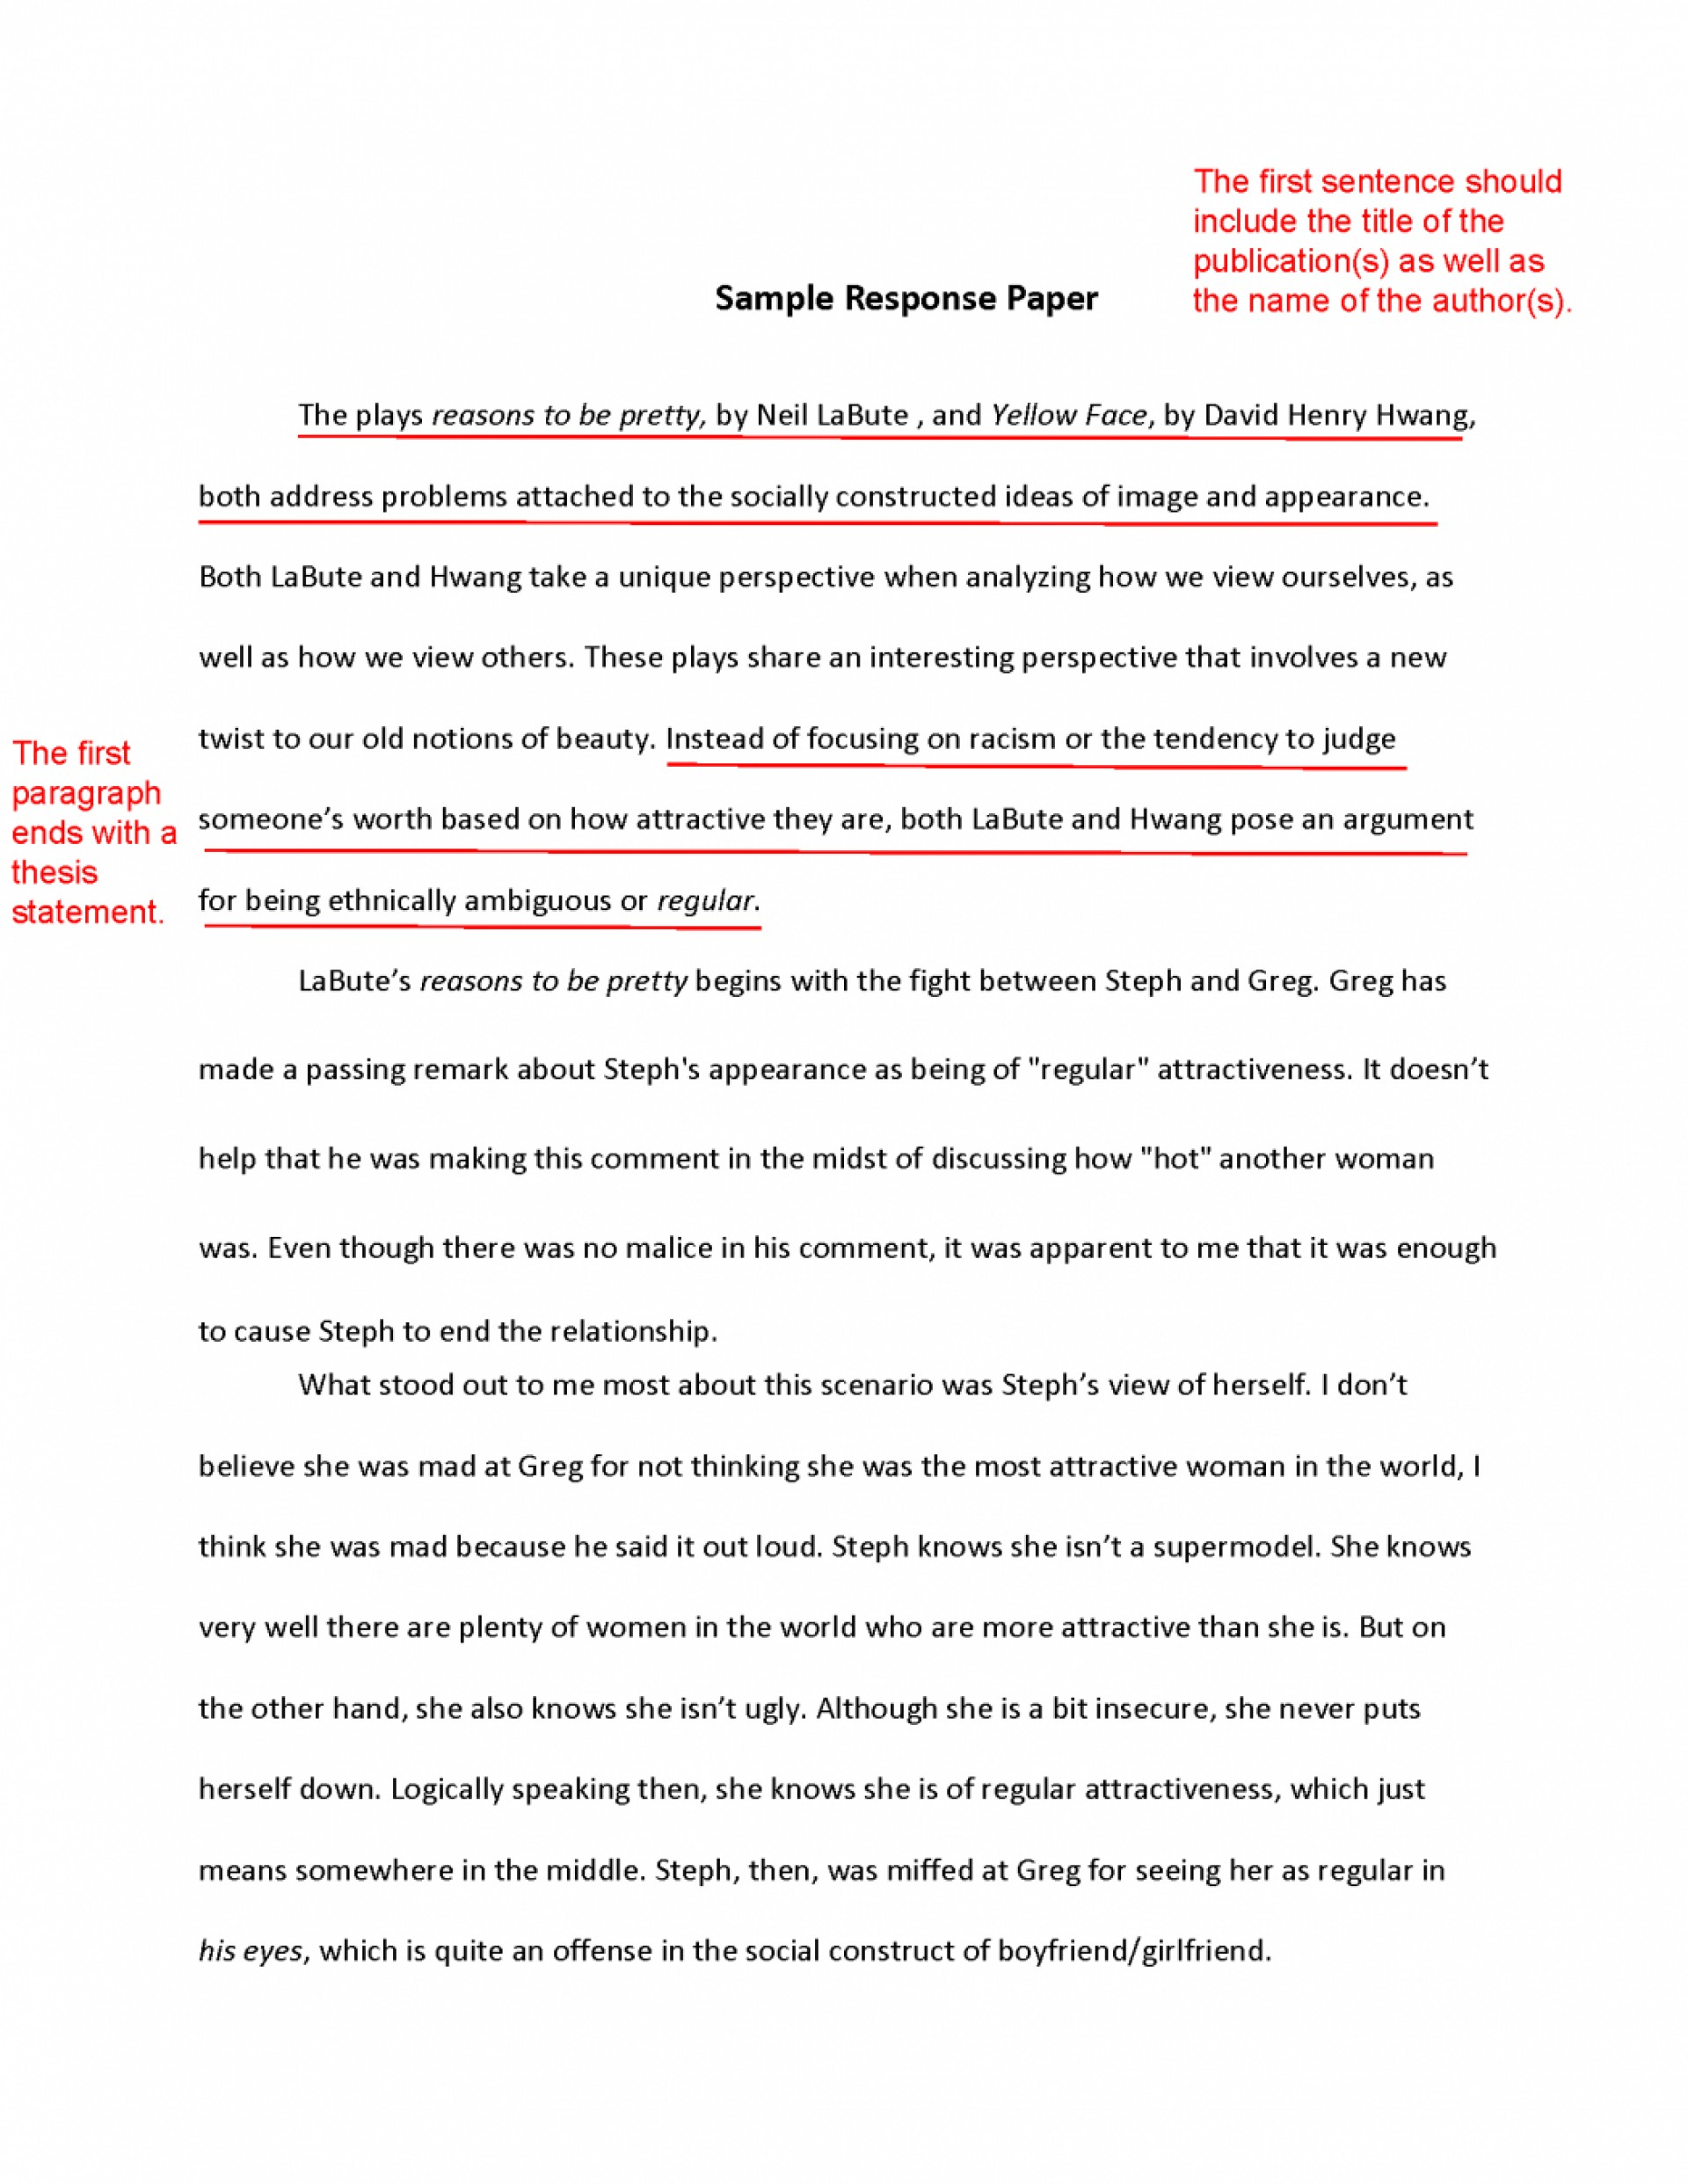 006 Proposal Essays Essay Topics List Of Good To Write Satirical Narrative About Responce Easy Descriptive College Informative Persuasive Personal Research Paper 1048x1356 Awesome Modest Examples On Bullying 1920